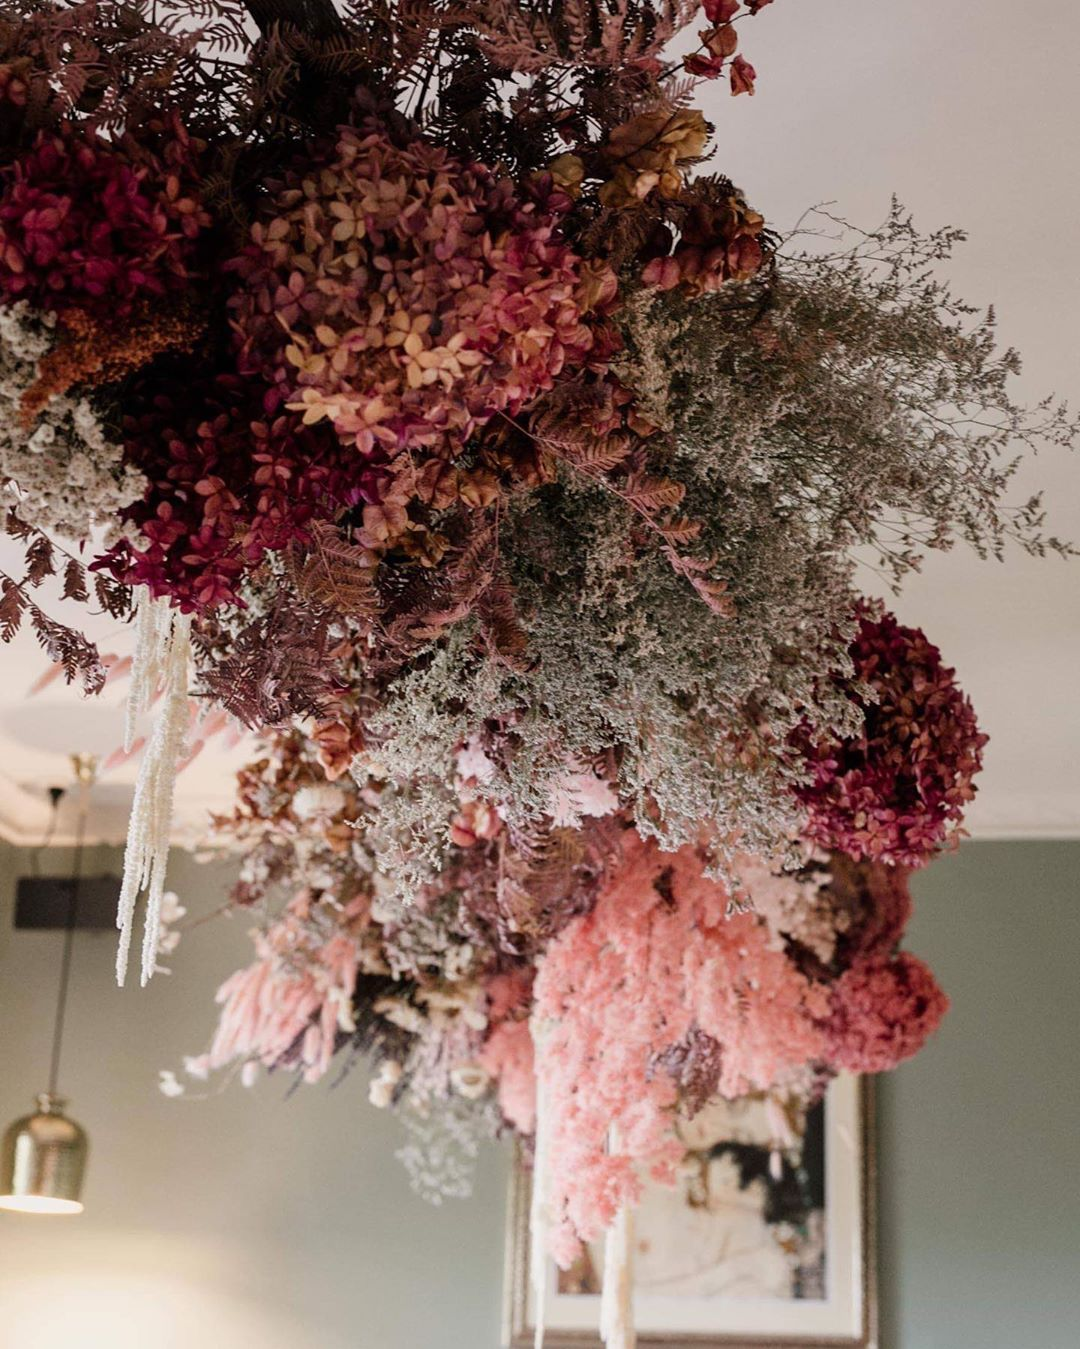 Ash Eco Floral Designer On Instagram Clouds Of Fairy Floss In 2020 Hanging Flowers Christmas Floral Floral Design